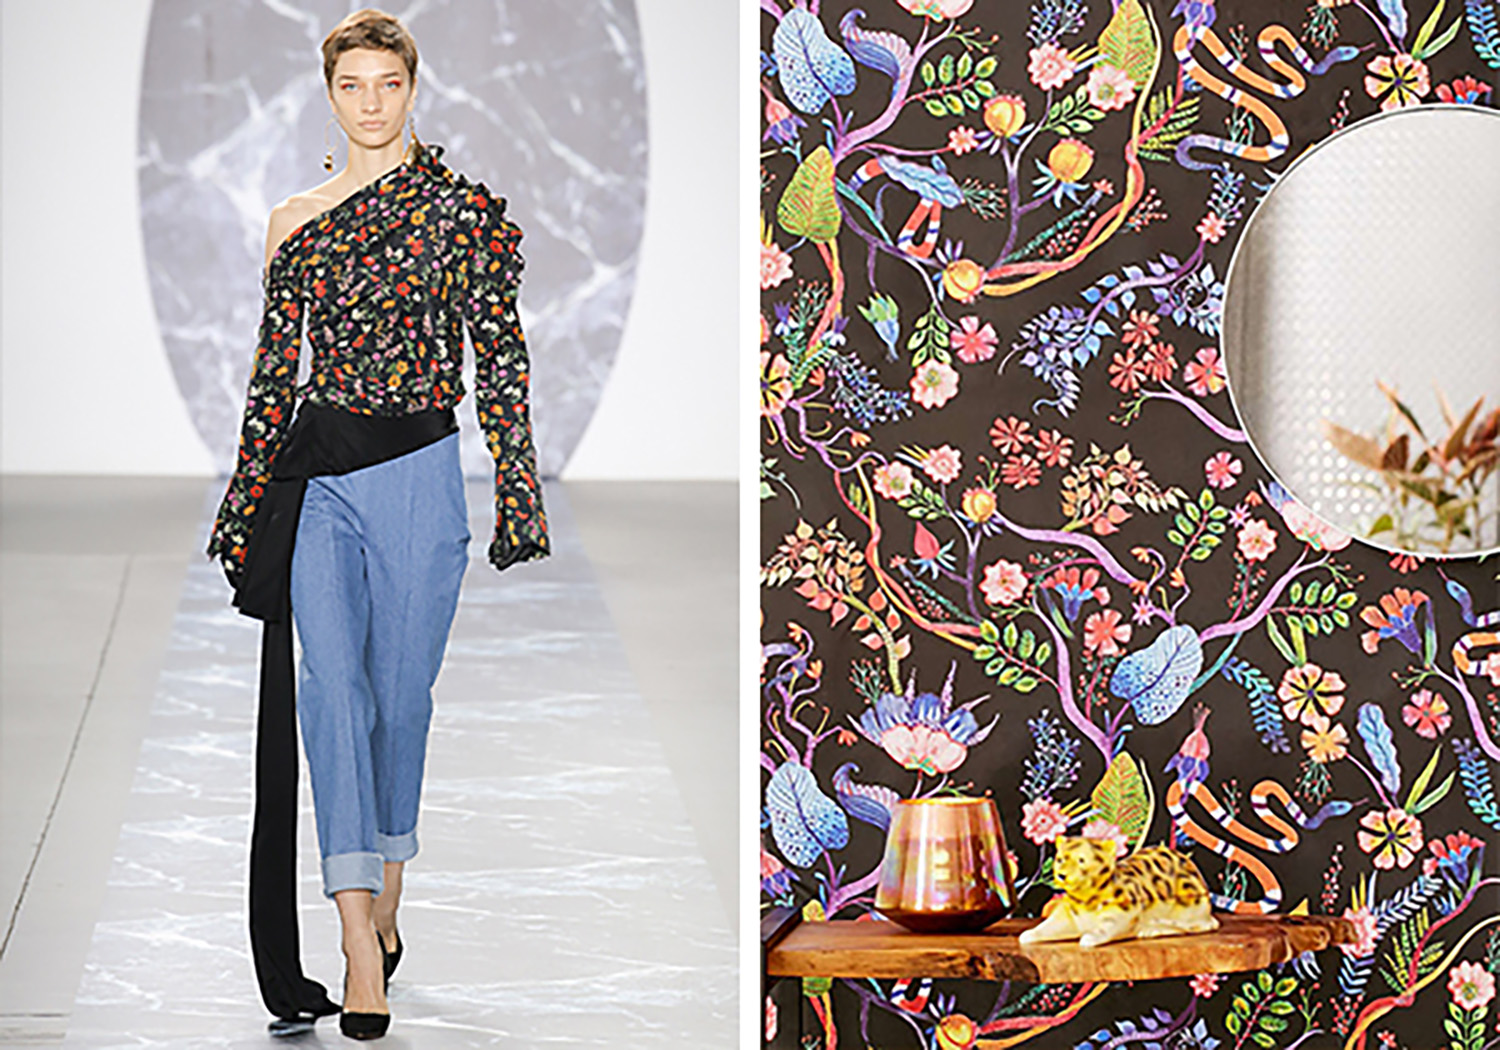 Design Inspo: 4 Fashion Week Trends to Try at Home